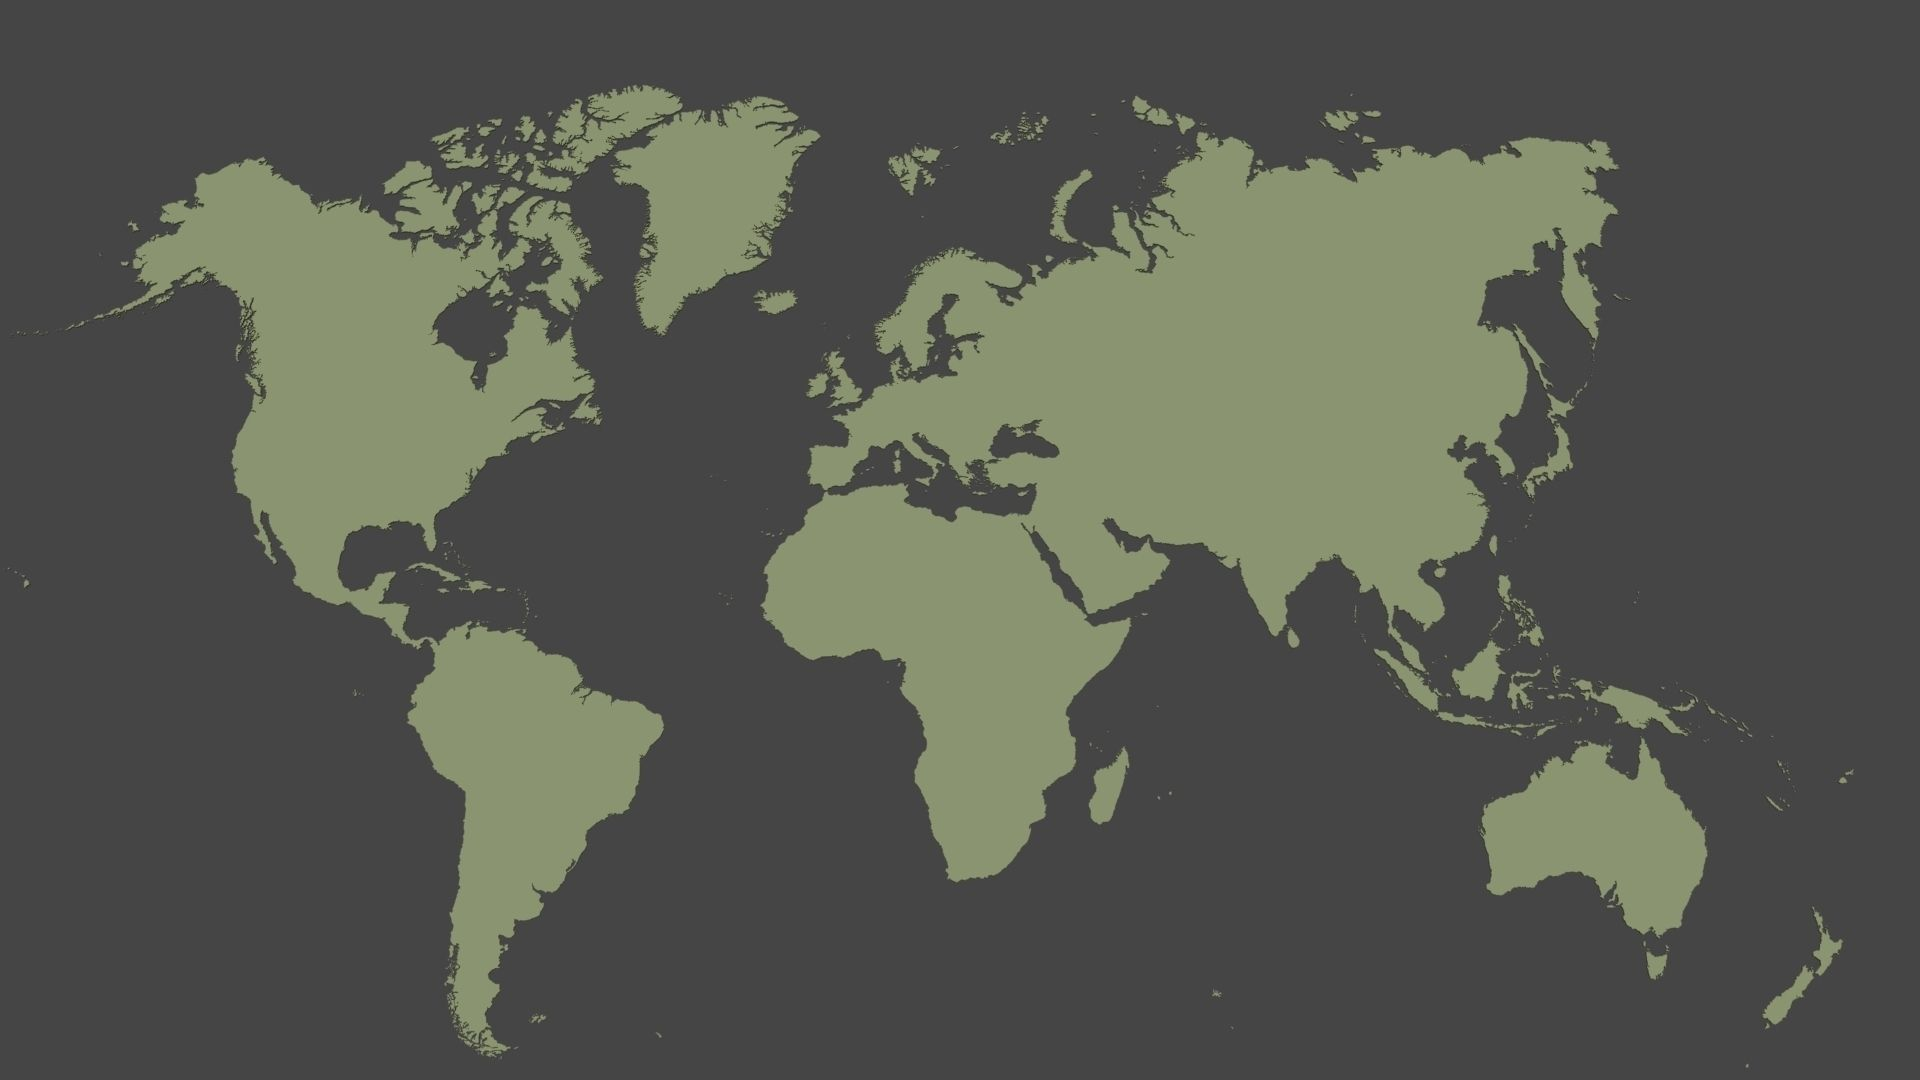 Vr ar ready 3d world map planisphere cgtrader 3d world map planisphere 3d model low poly obj 3ds fbx c4d ma mb mtl gumiabroncs Choice Image